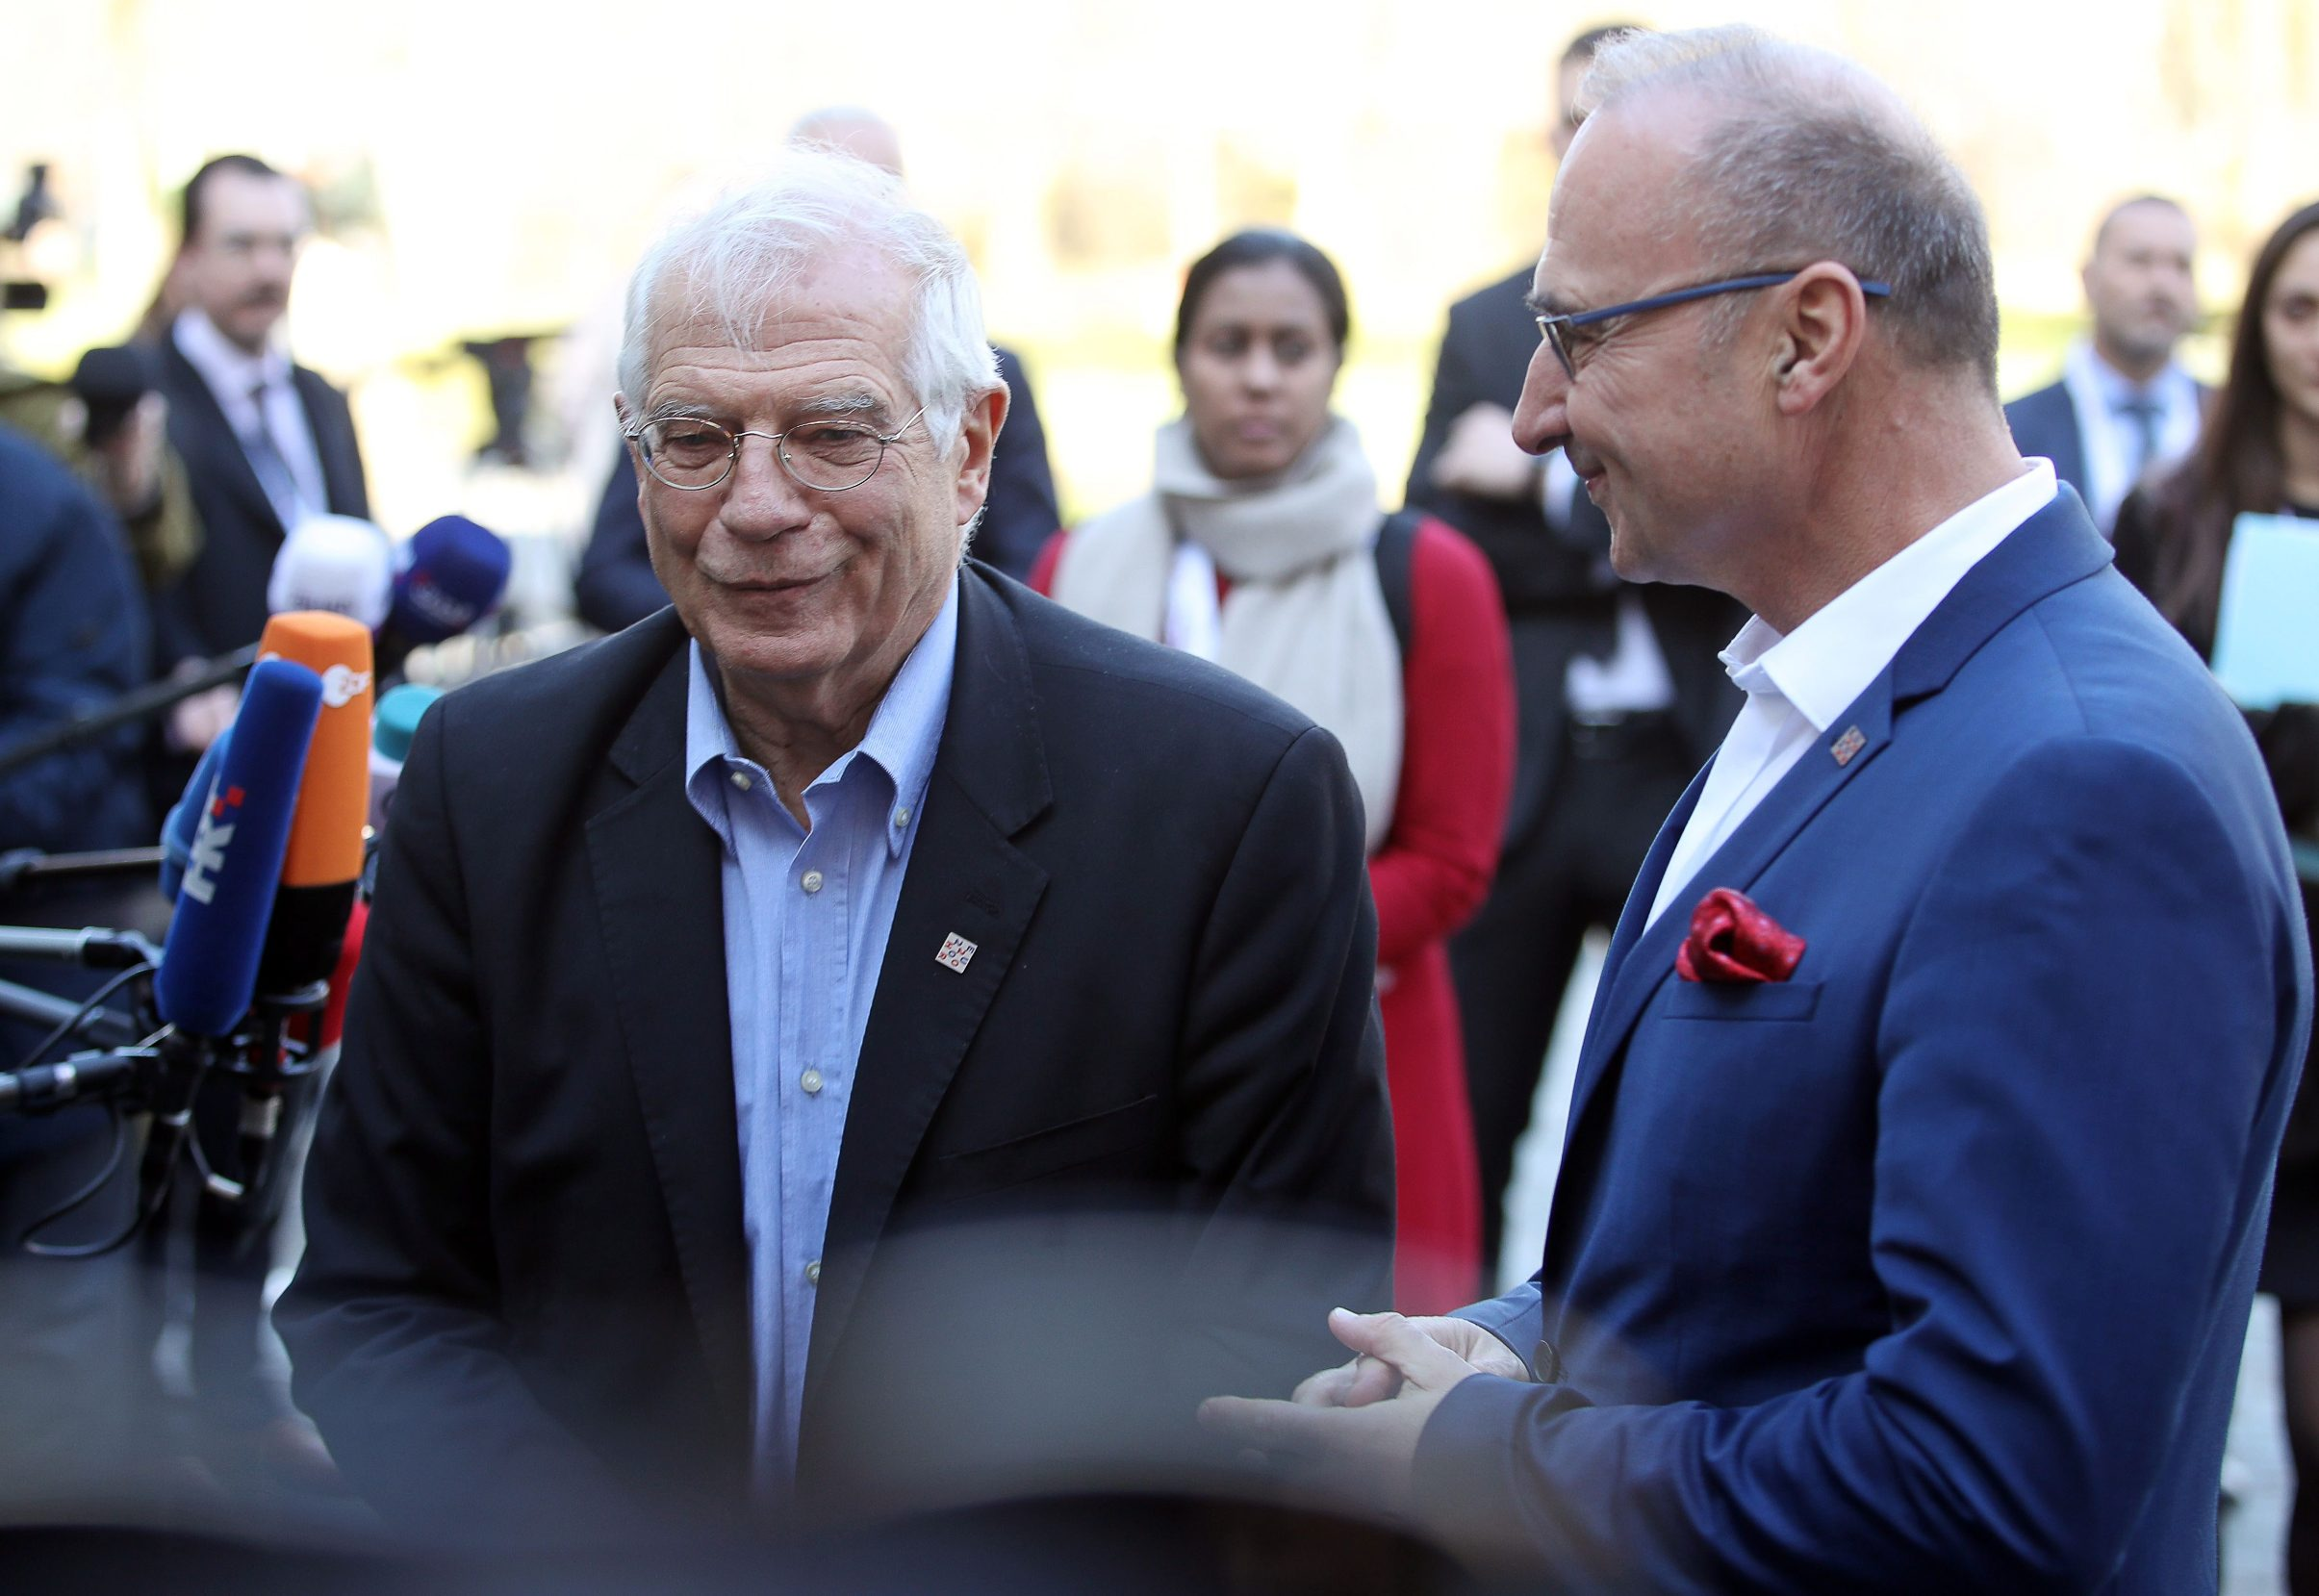 High Representative of the European Union Josep Borrell Fontelles (L) and Croatian Foreign Minister Gordan Grlic Radman (R) arrive at the  Informal meeting of EU Foreign Affairs ministers (Gymnich) at Luznica Castle near Zagreb on March 5, 2020